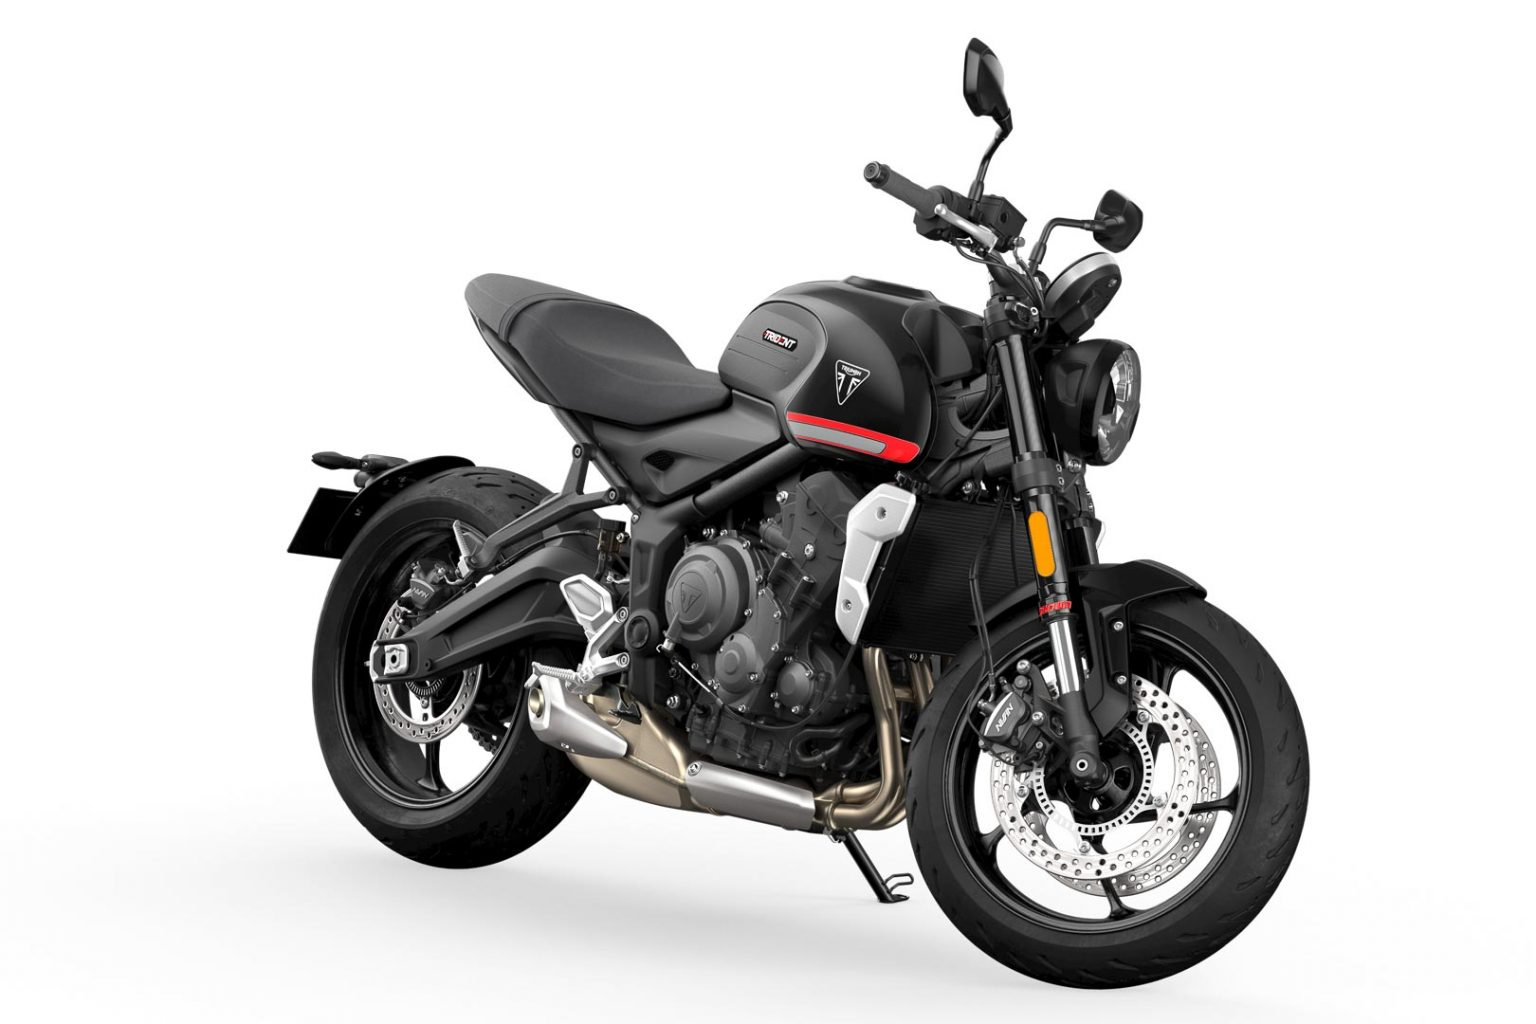 2021 TRIUMPH TRIDENT 660 FIRST LOOK: 42 PHOTOS AND 13 FAST FACTS